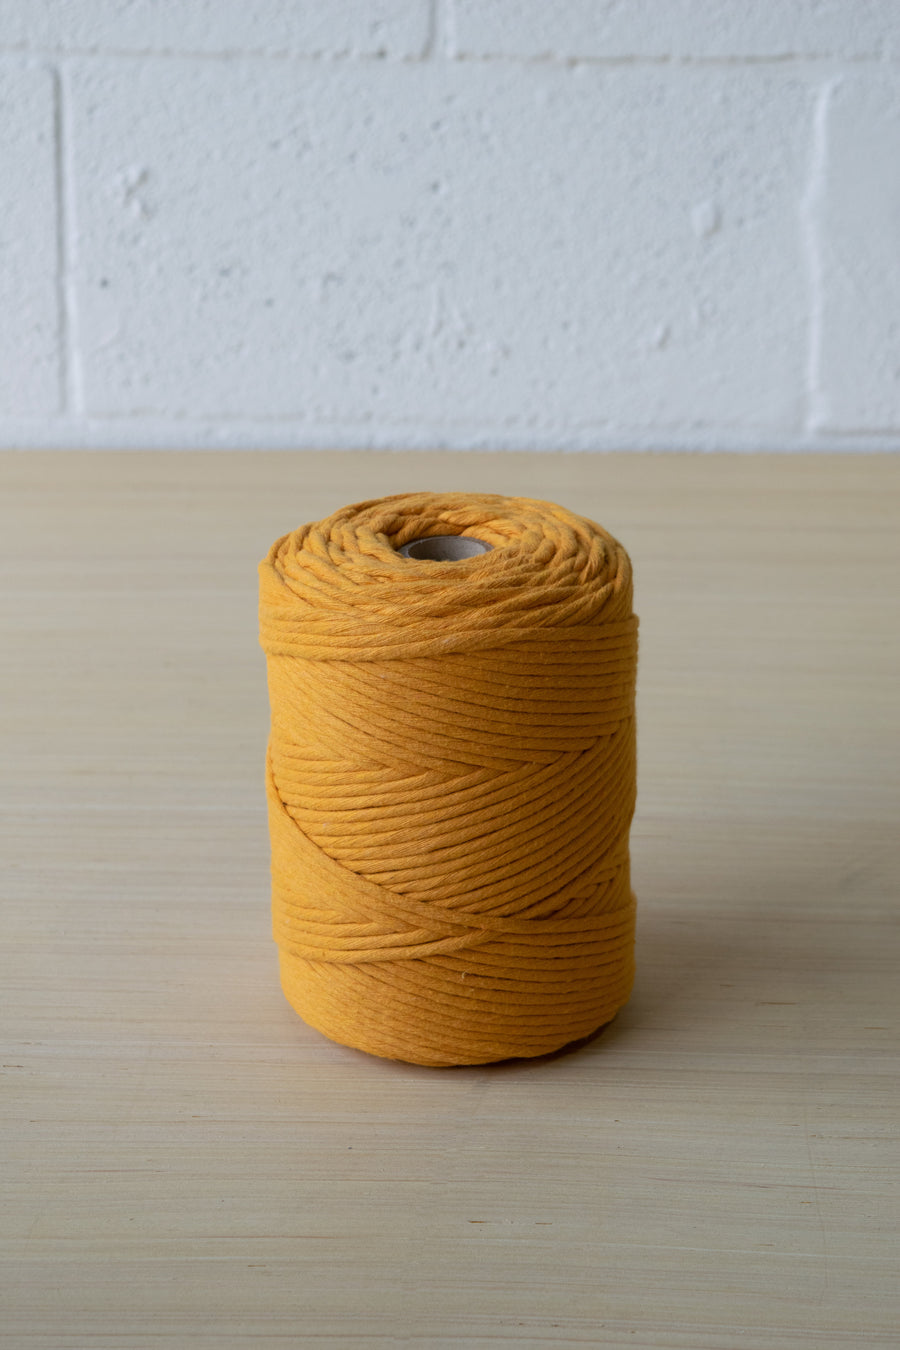 SOFT COTTON CORD ZERO WASTE 4 MM - 1 SINGLE STRAND - CITRUS COLOR